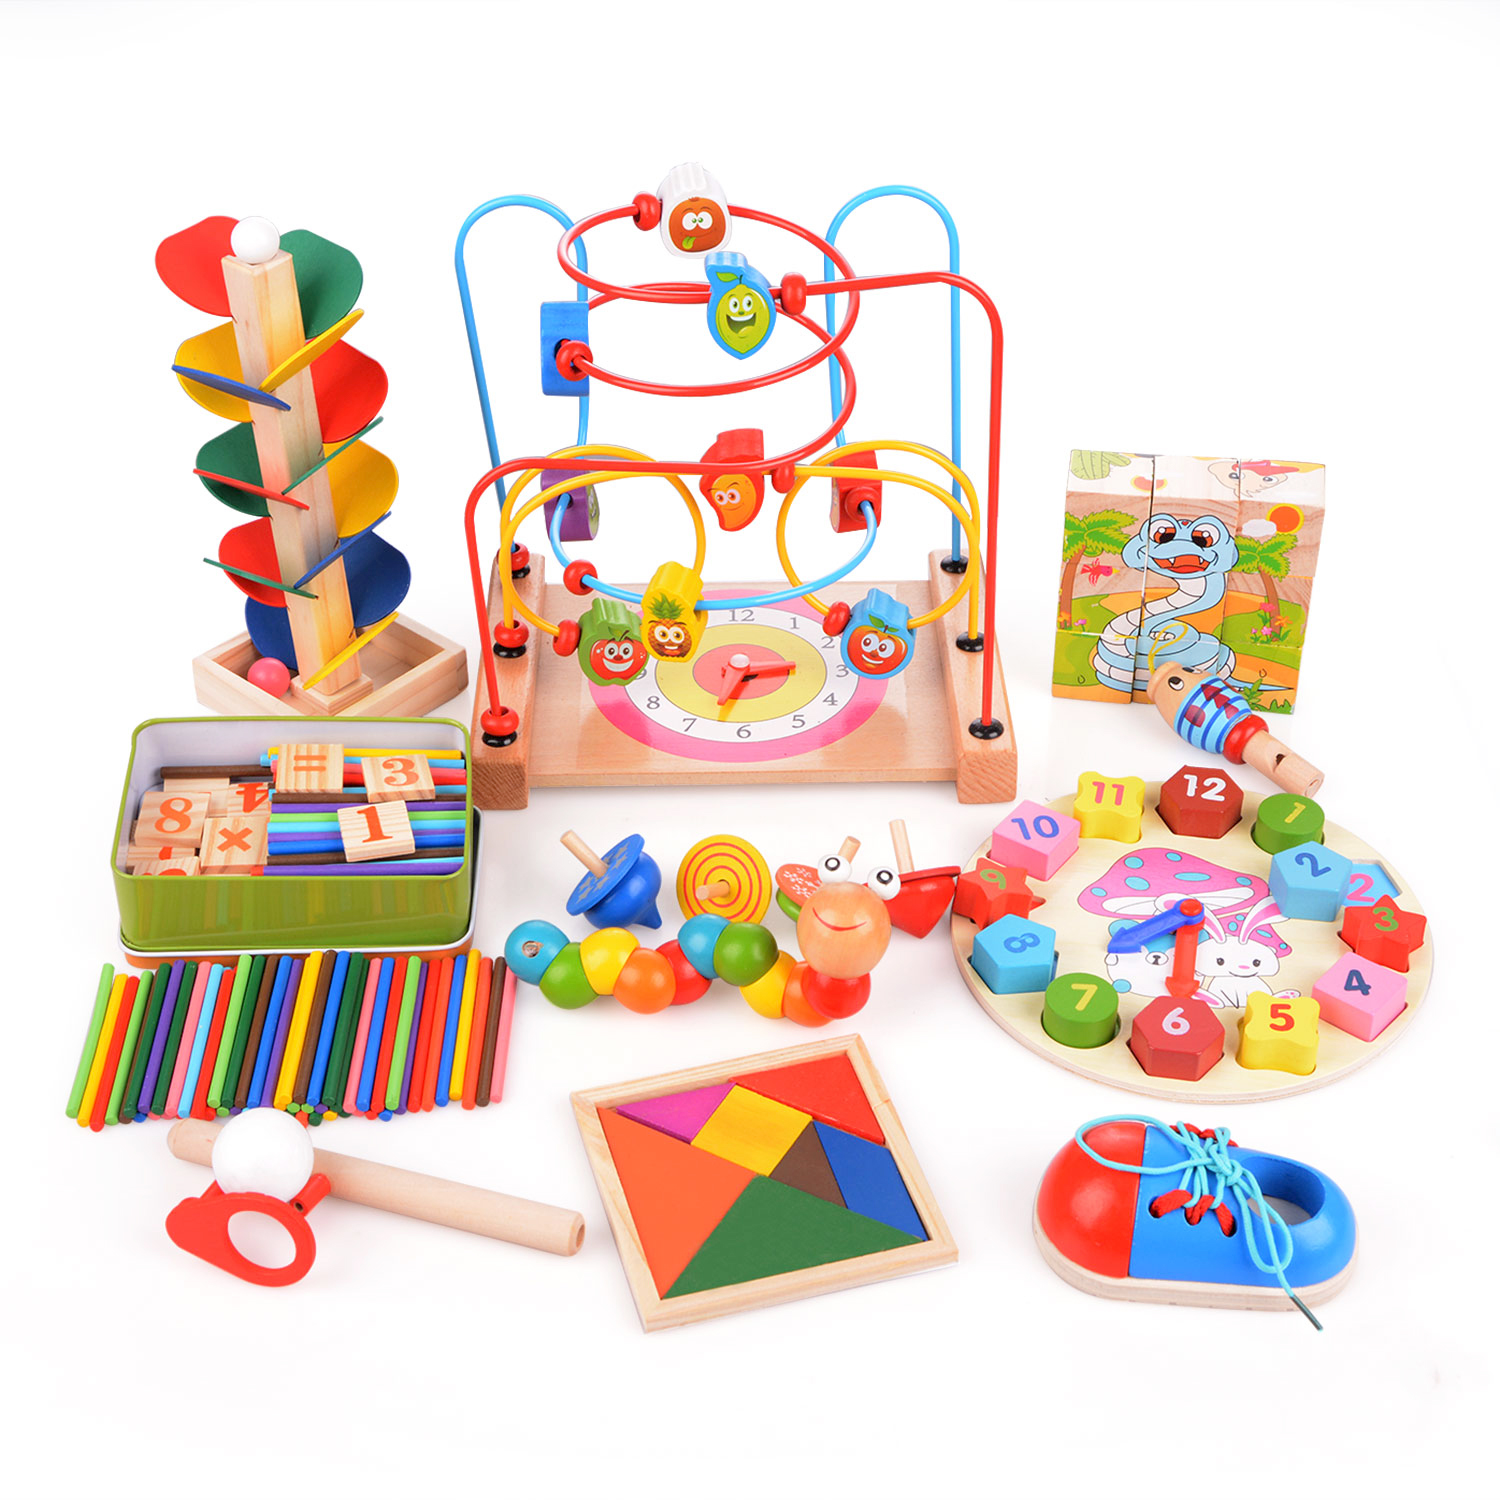 Child Early Educational Toys14pcs set Wooden Toys Three Dimensional Jigsaw Round Circles Bead Wire Maze Roller